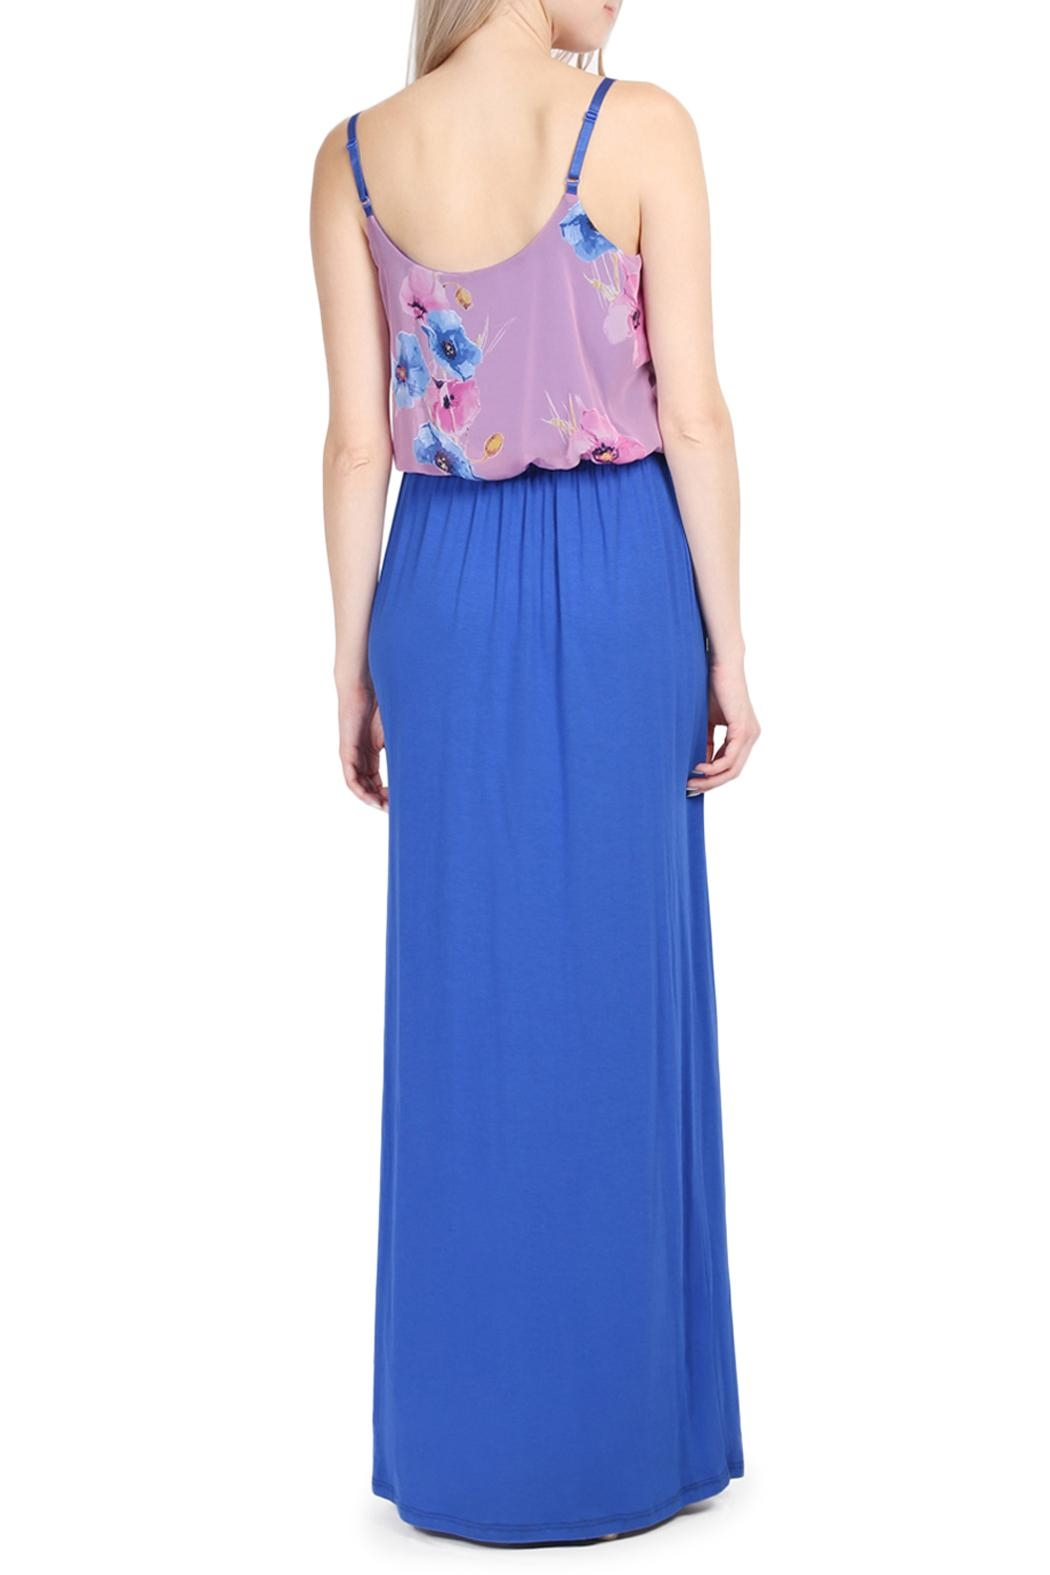 Riah Fashion Floral Sleeveless Maxi Dress - Front Full Image